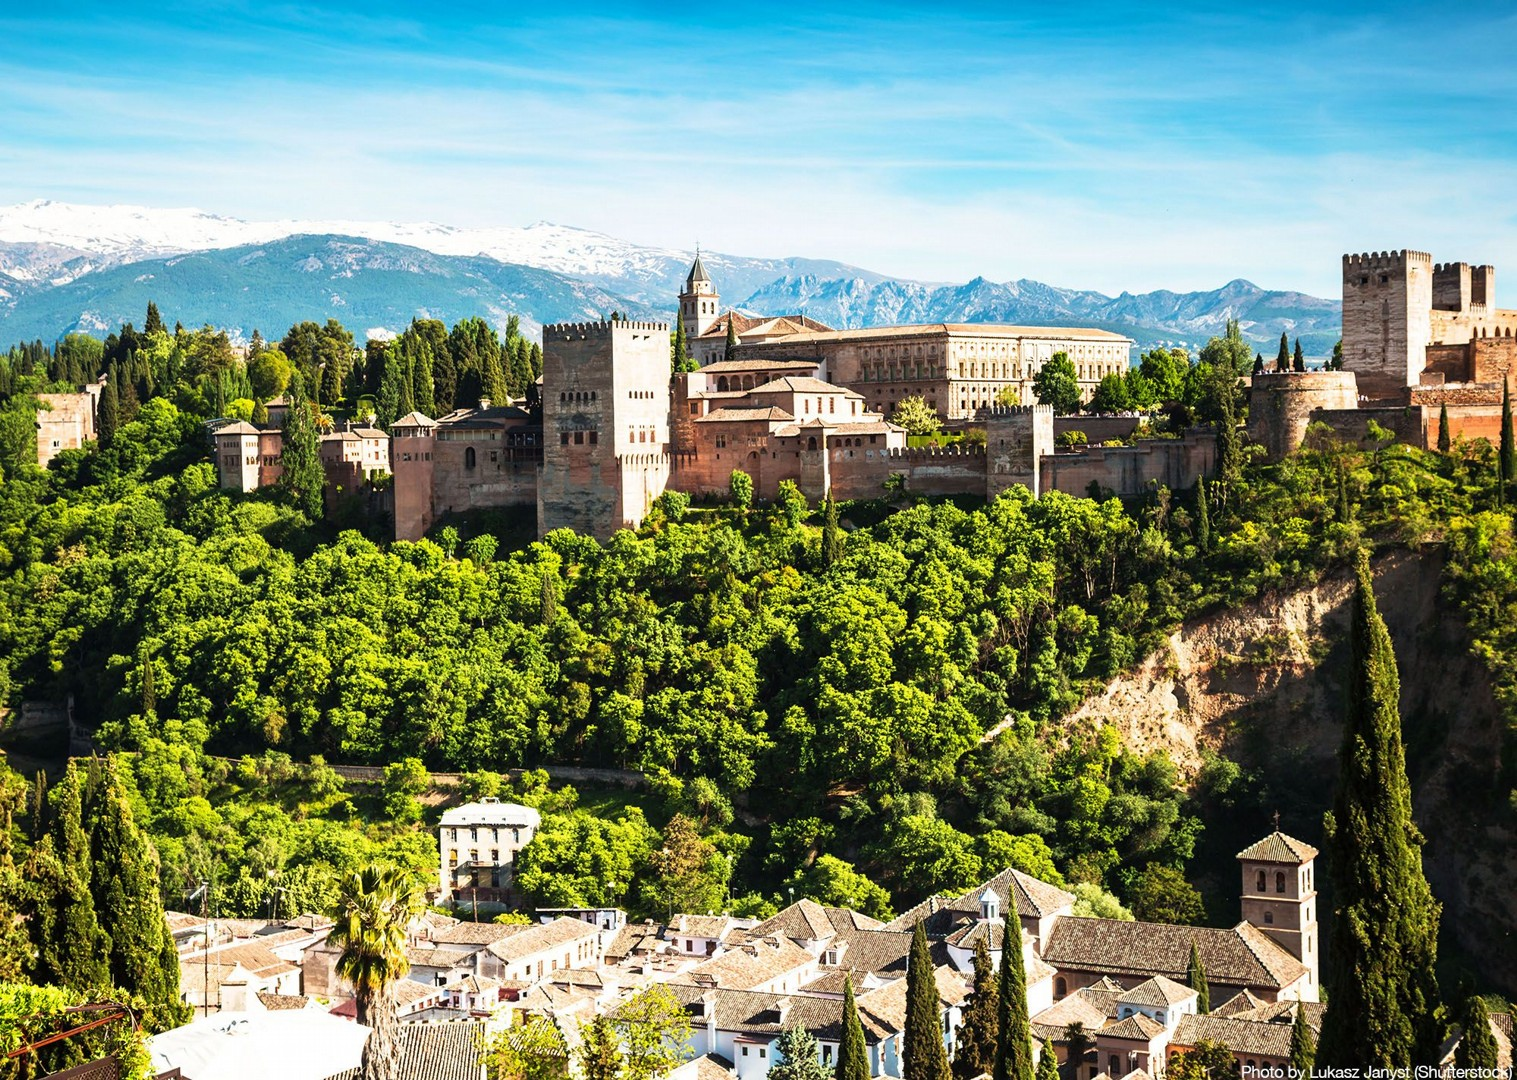 alhmabra-granada-to-seville-guided-leisure-cycling-holiday-in-spain.jpg - Southern Spain - Sierra Nevada and Granada - Guided Road Cycling Holiday - Road Cycling